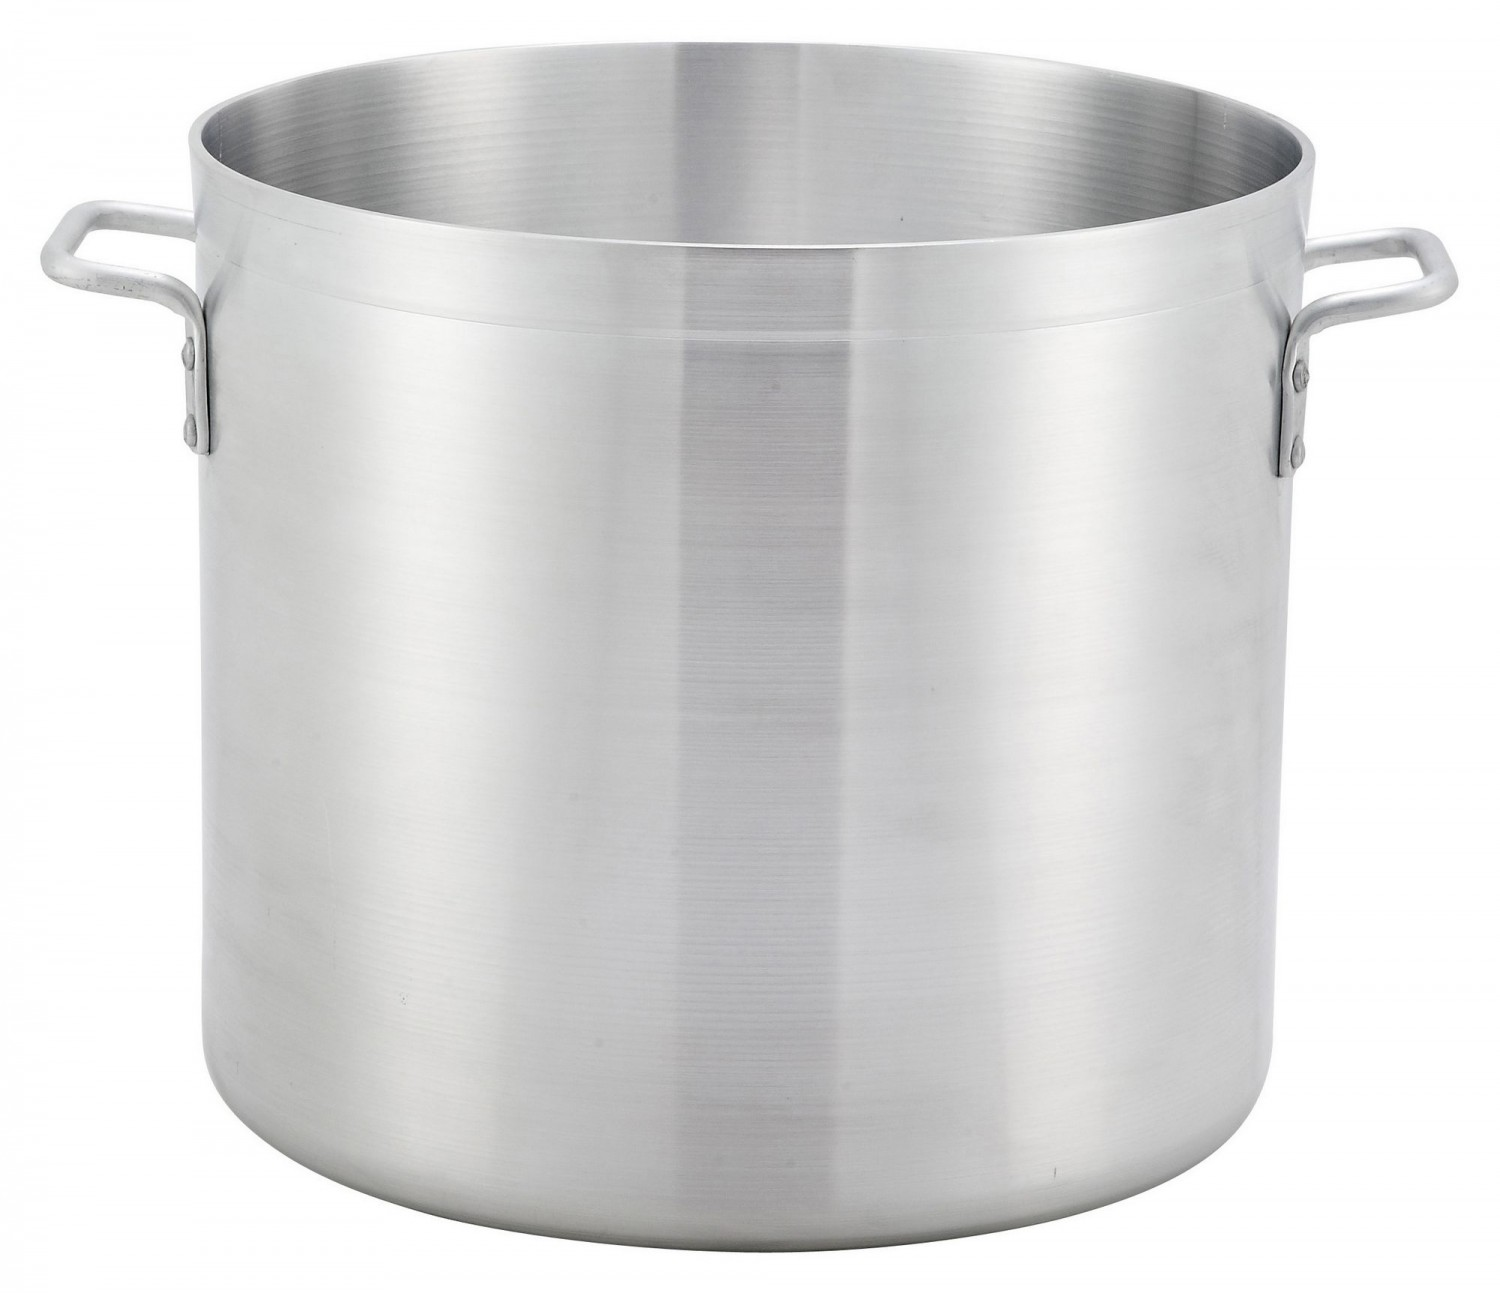 Winco ALST-100 Win-Ware Aluminum Stock Pot 100 Qt.